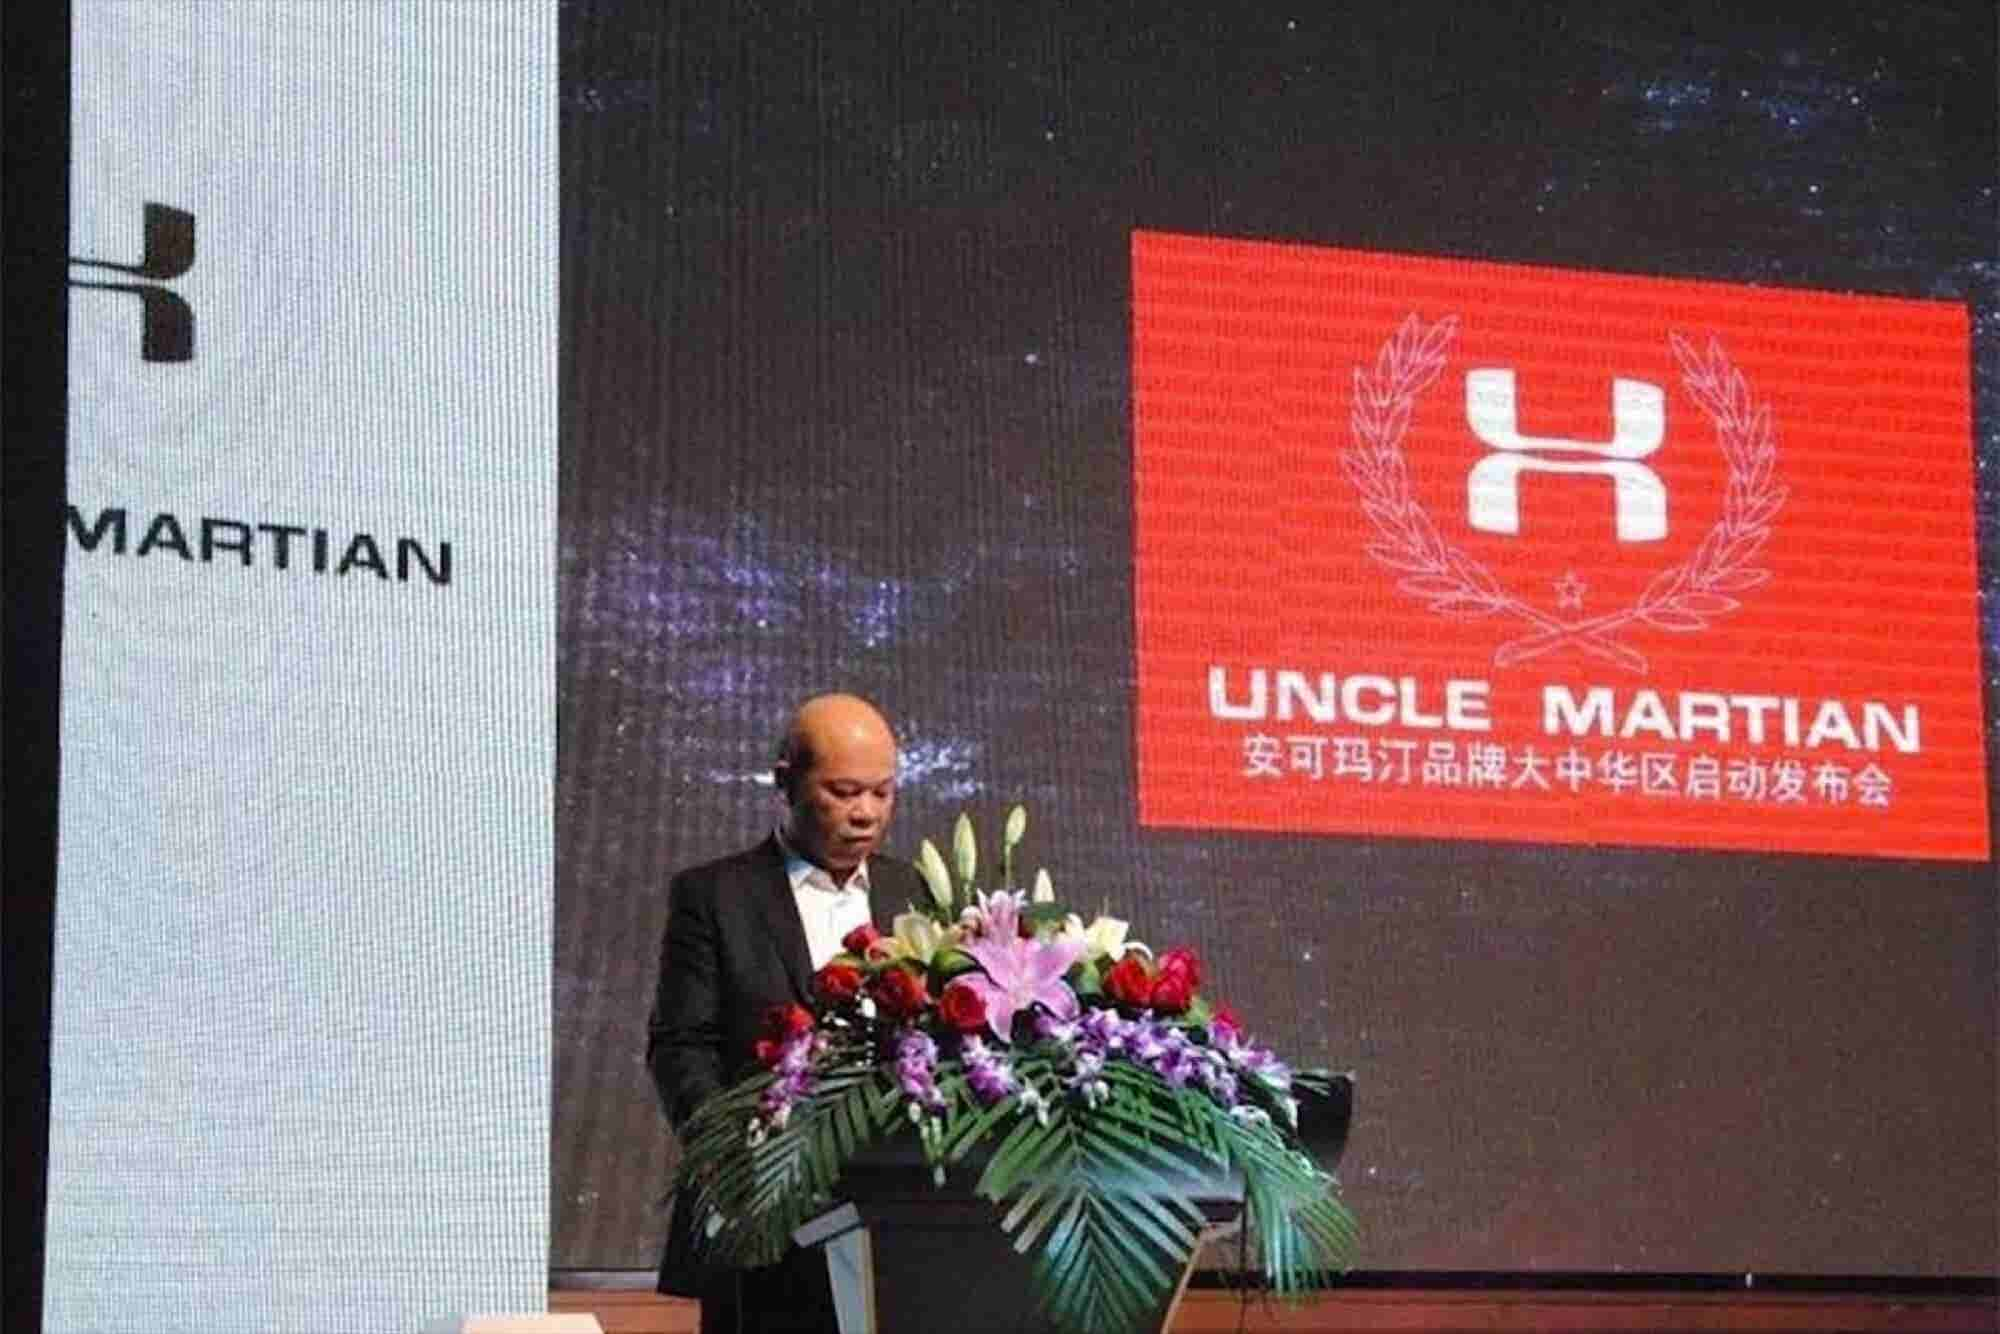 A Chinese Sportswear Brand Called Uncle Martian Just Launched, and It Appears to Be Openly Ripping Off Under Armour